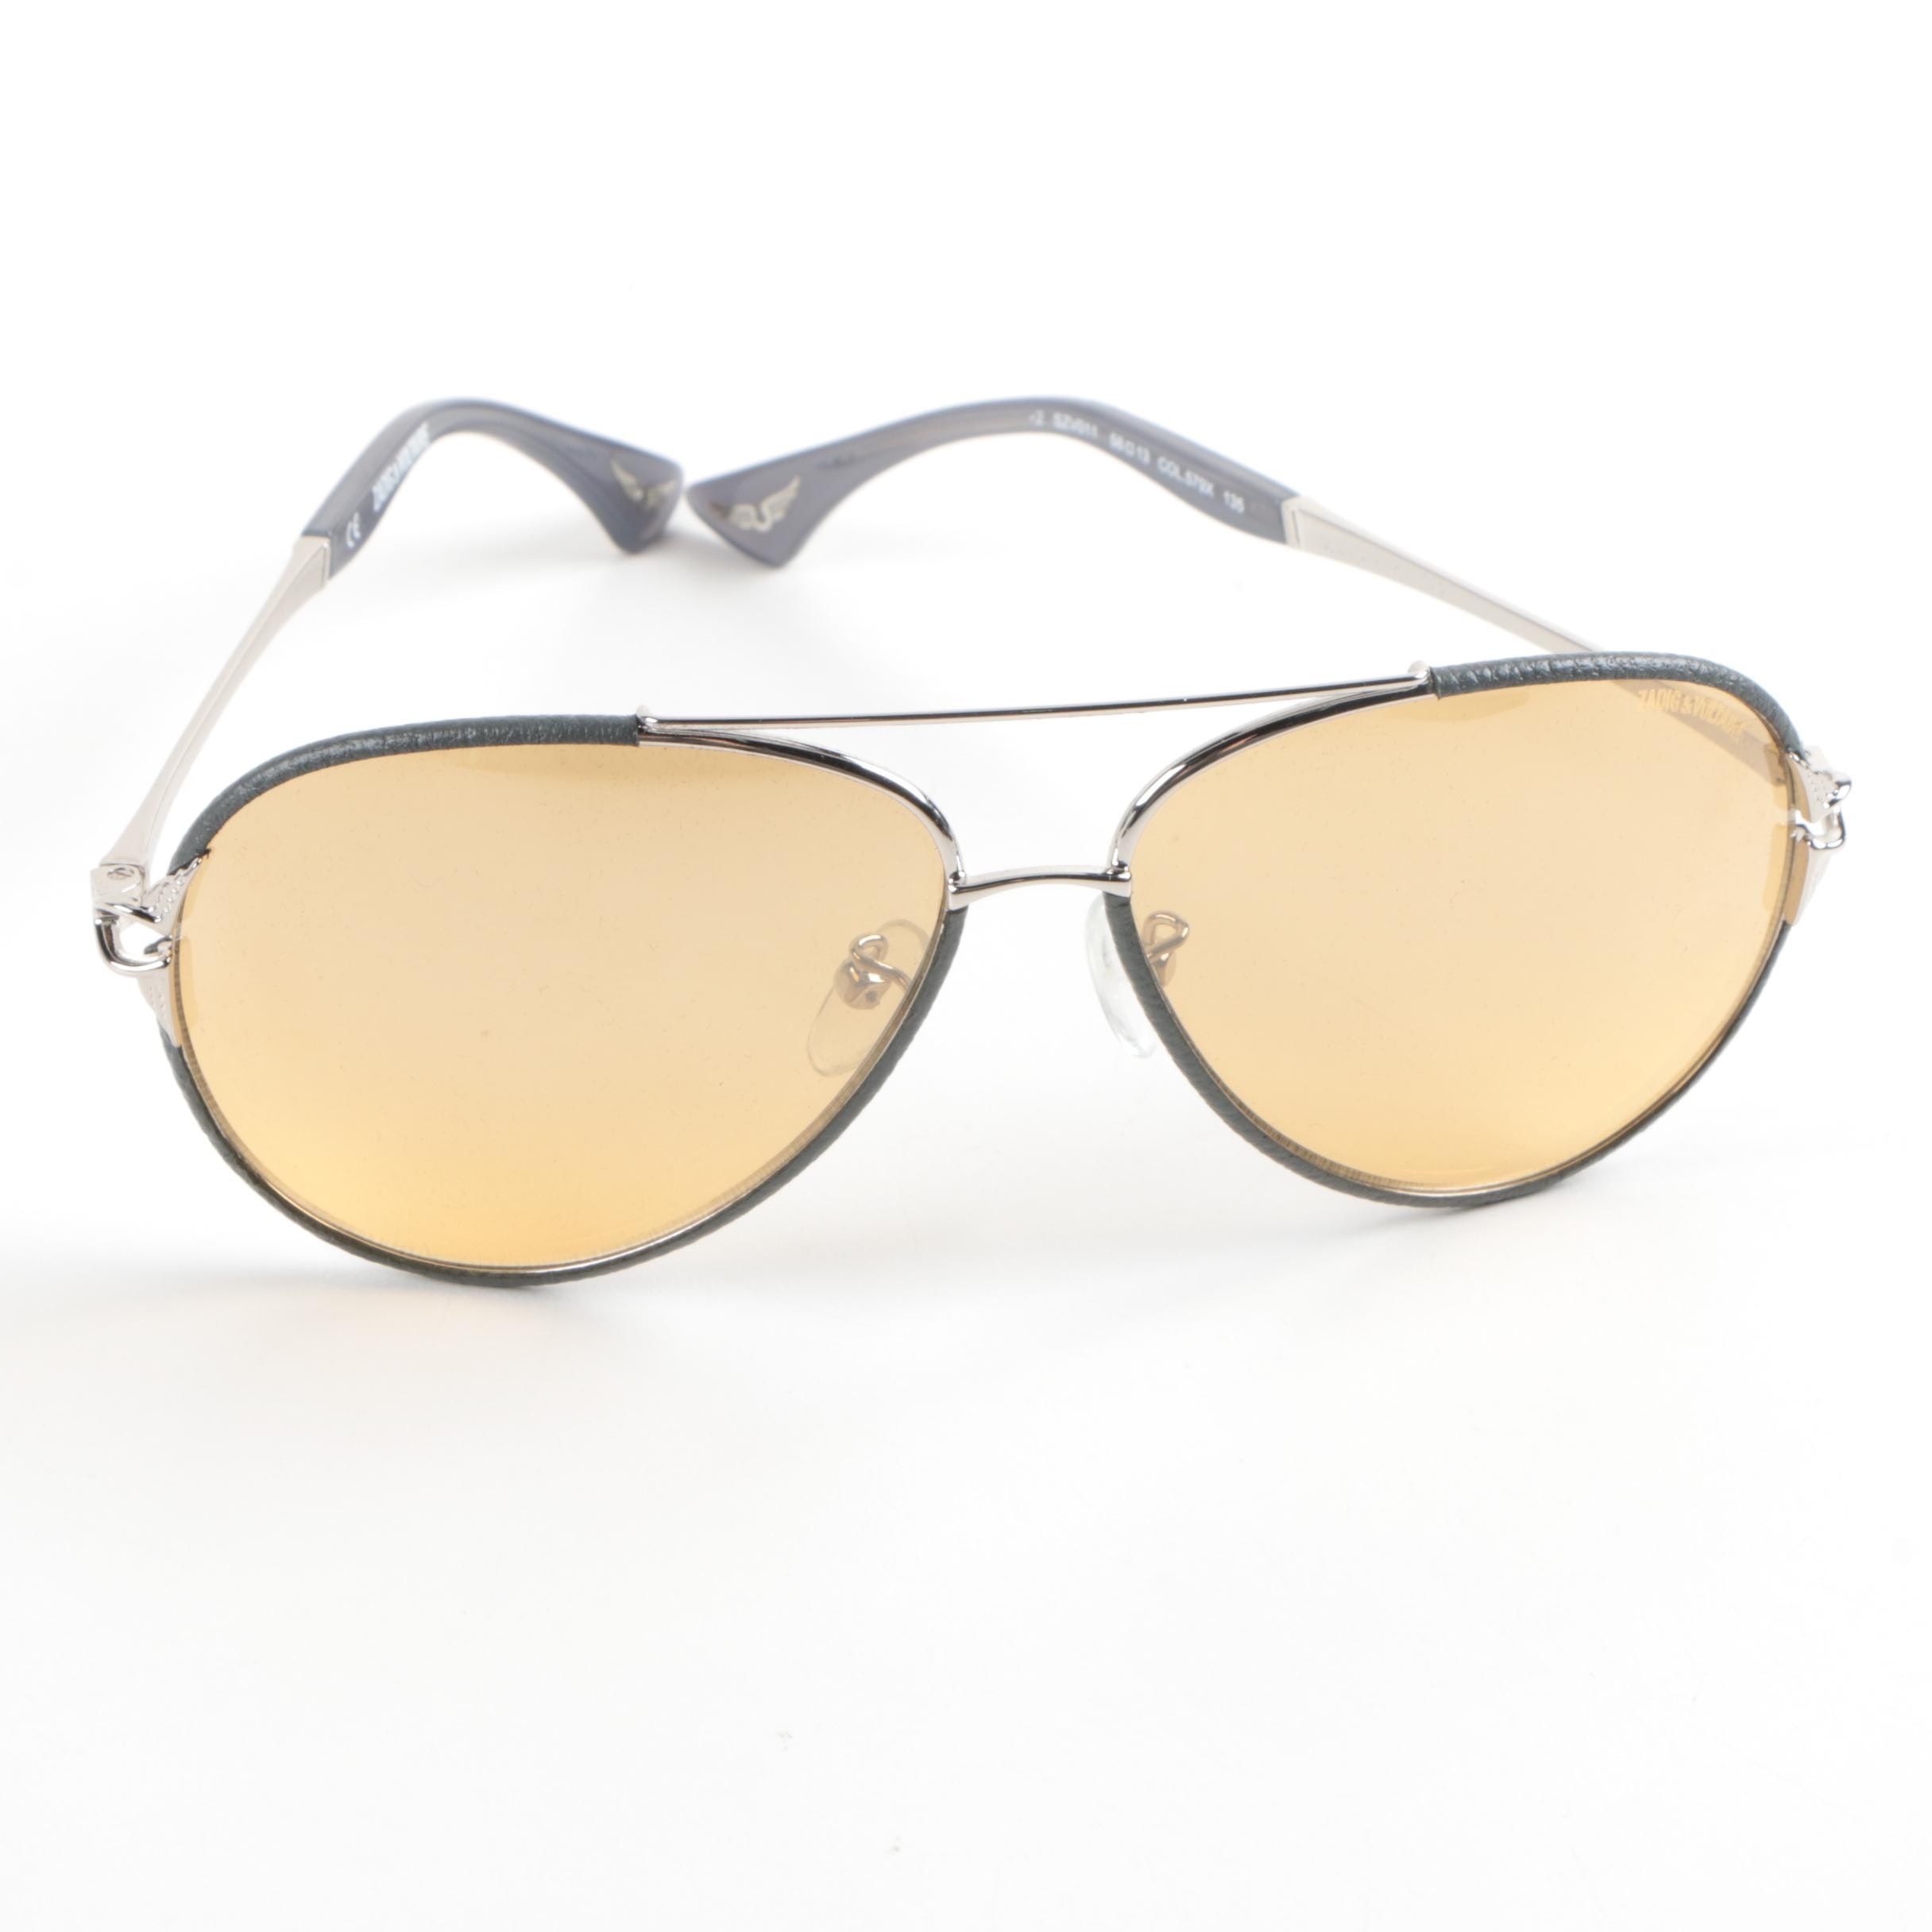 Zadig & Voltaire Sunglasses with Case